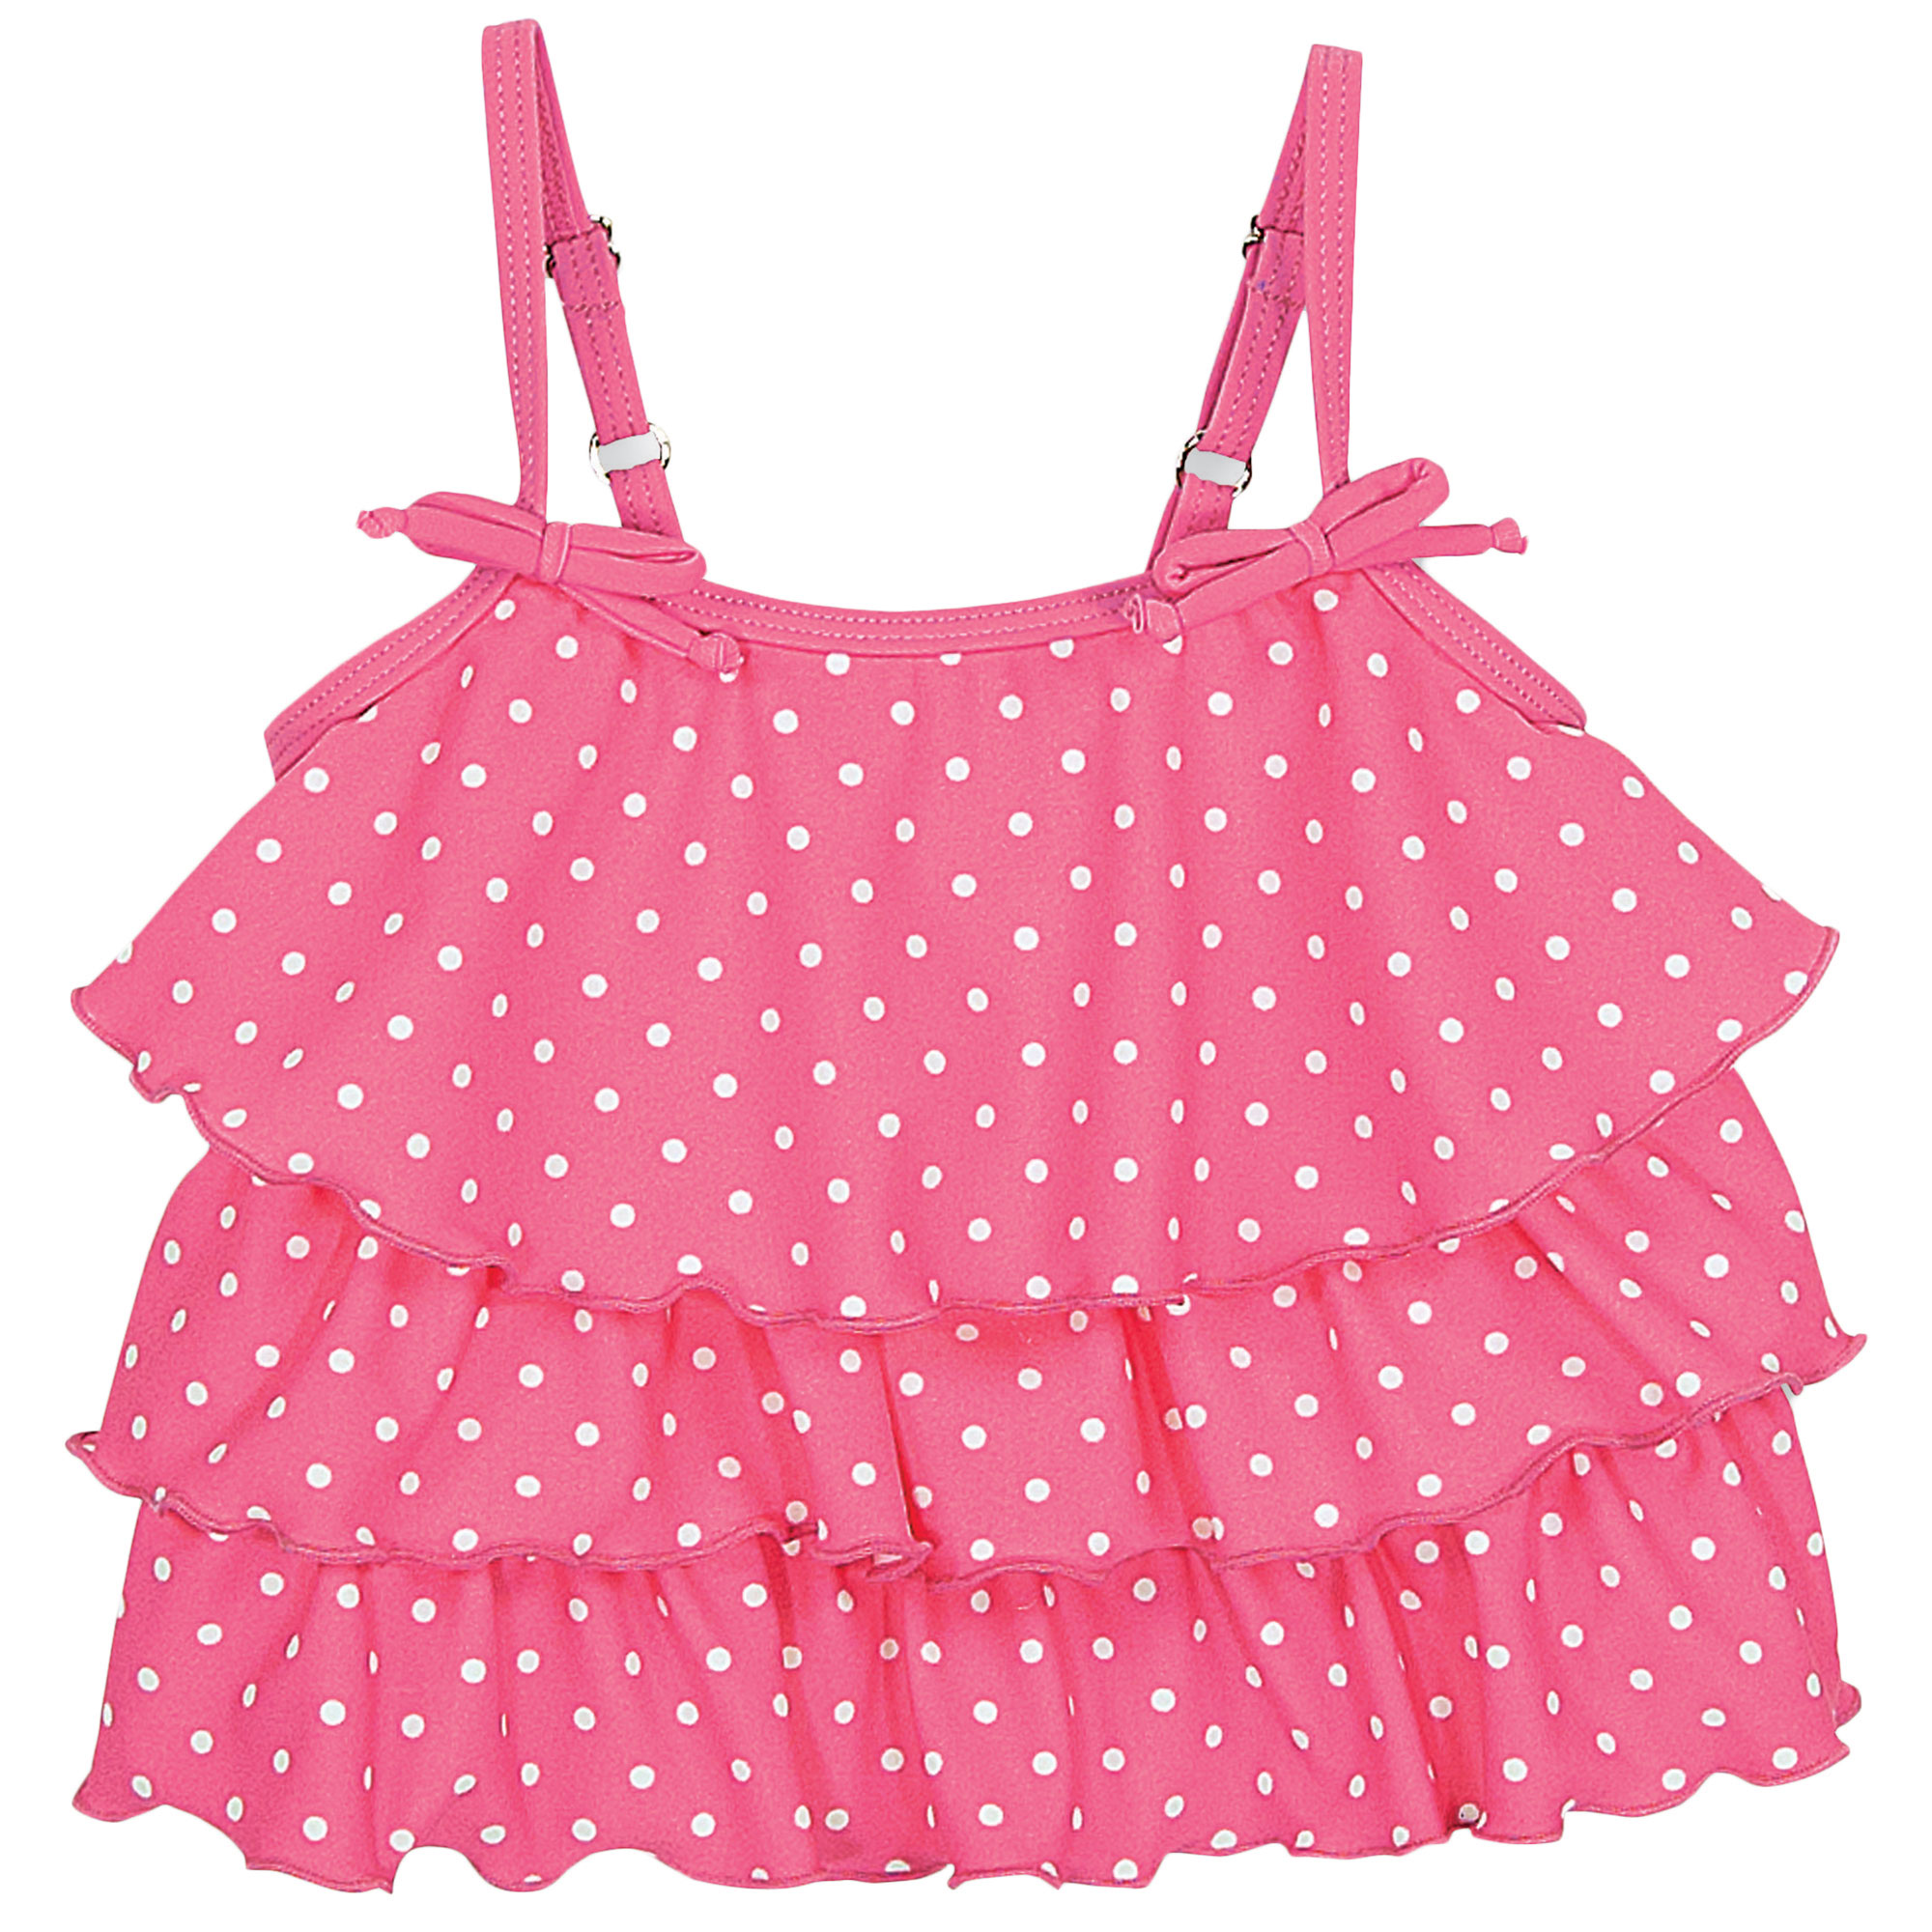 Sun Smarties Baby and Toddler Girl Tankini - Pink Polka Dot Design - Sleeveless Swim Top